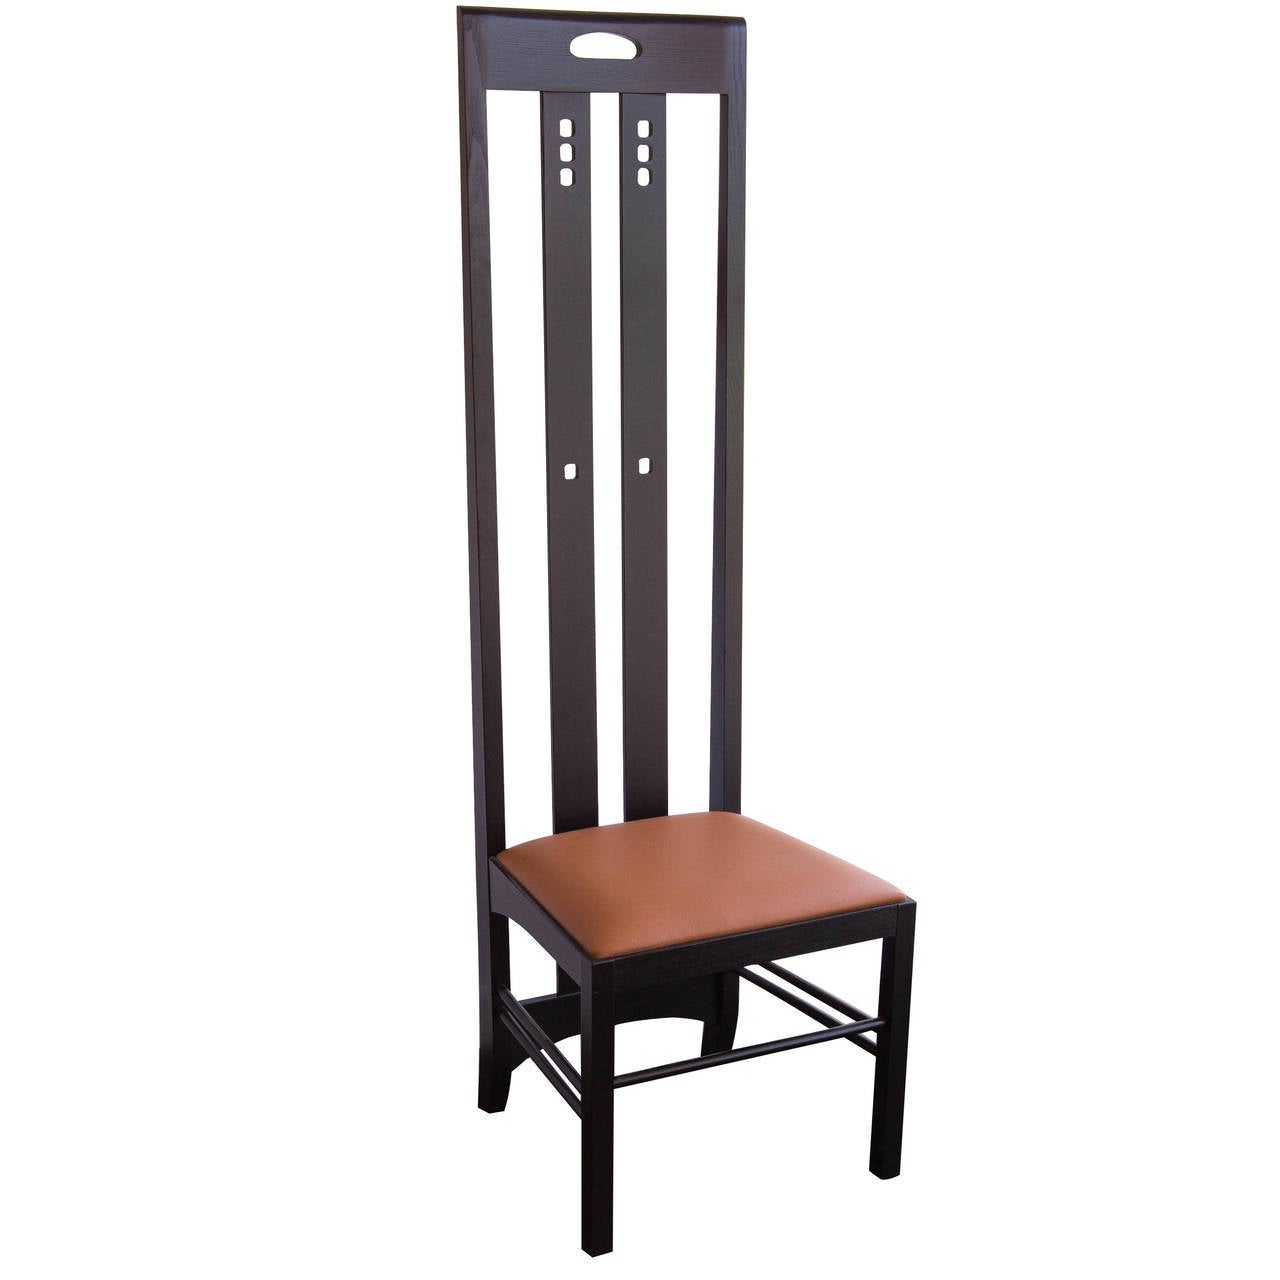 Charles Rennie Mackintosh Ingram Chair By Cassina At 1stdibs